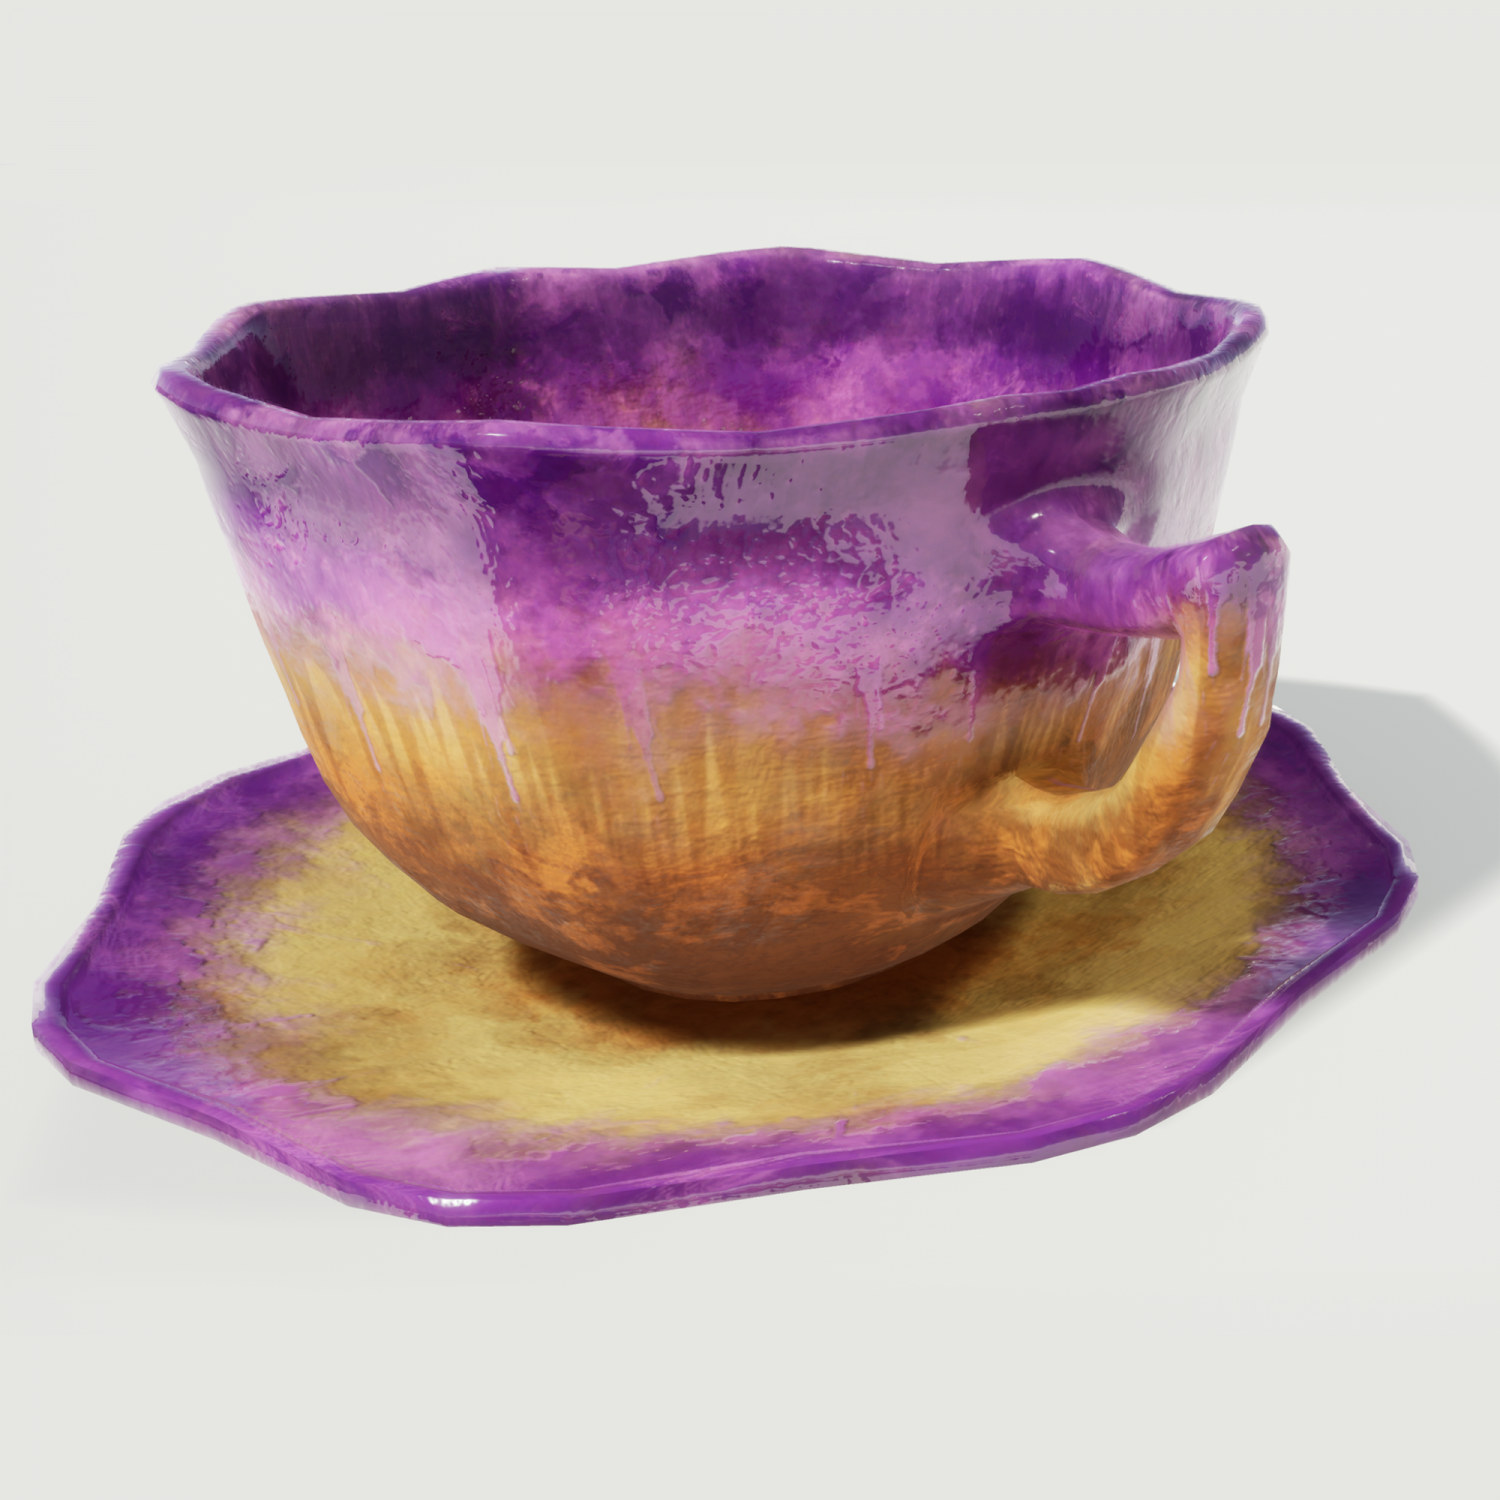 Teacup and Saucer Purple Glazed 3D Model in Cookware Tools 3DExport